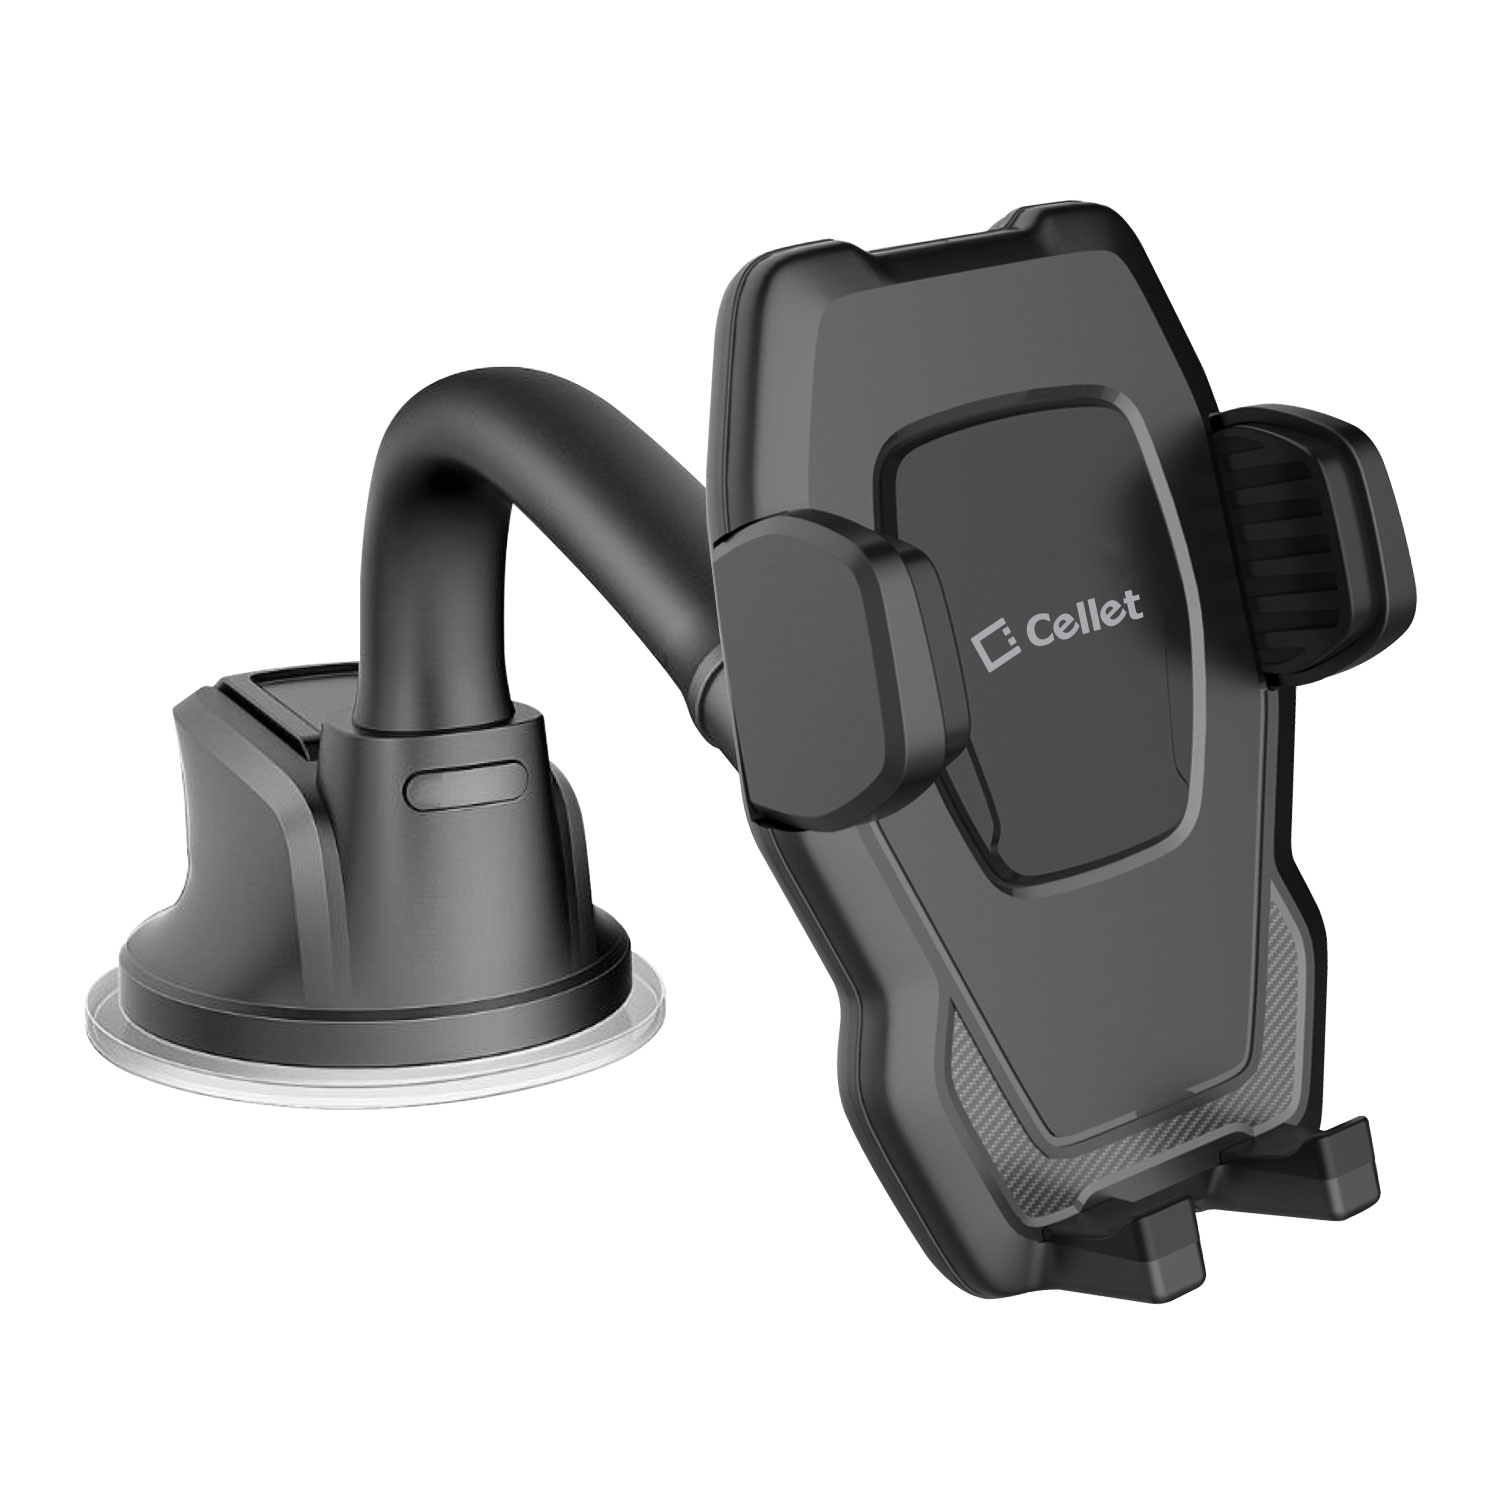 LG K40 Windshield Phone Holder Goose Neck Black